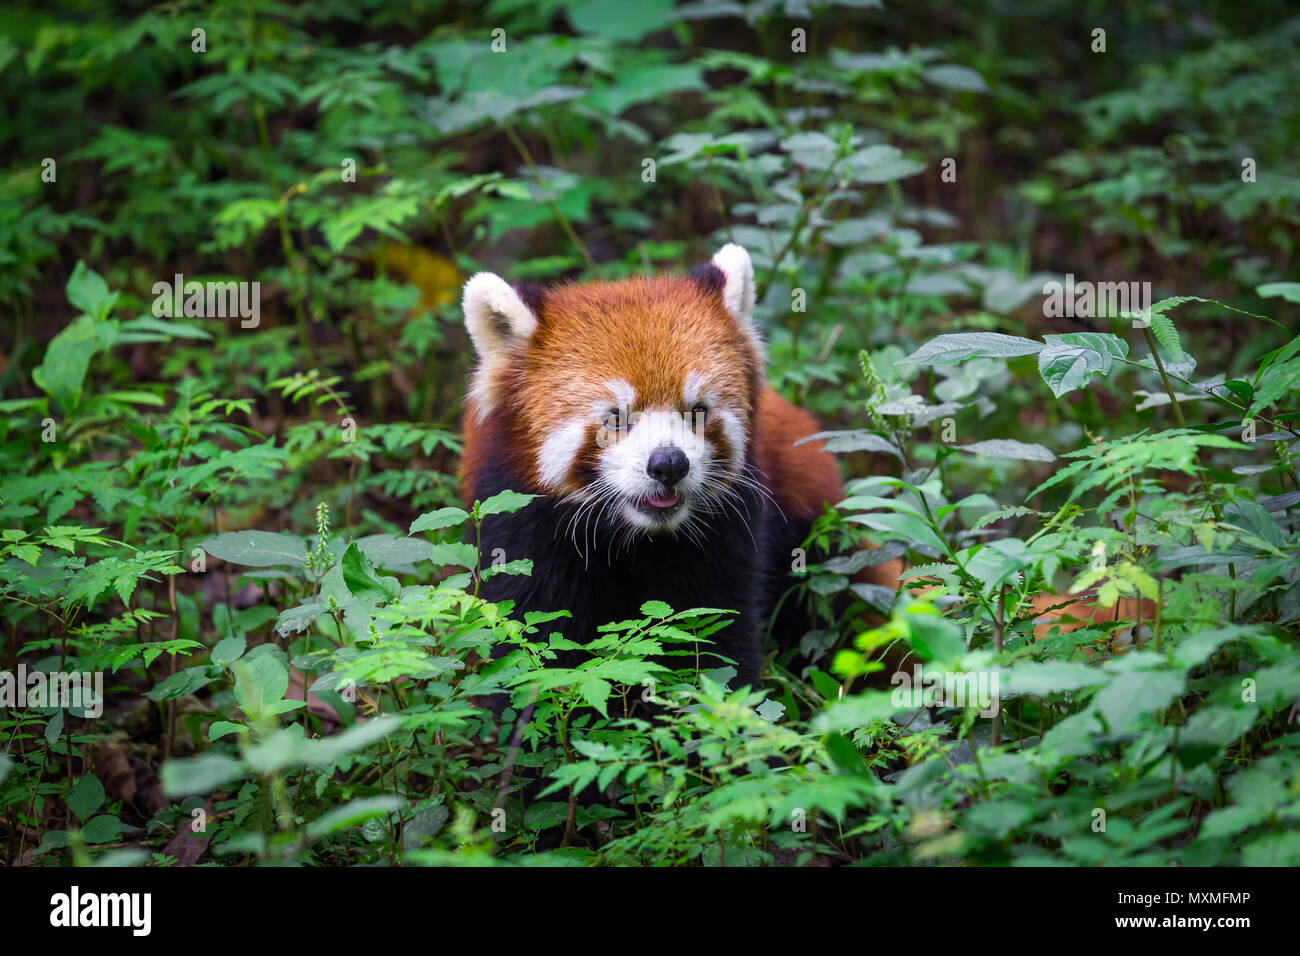 Portrait of an adorable Red Panda , Ailurus fulgens , fire fox surrounded by plants in forest - Stock Image